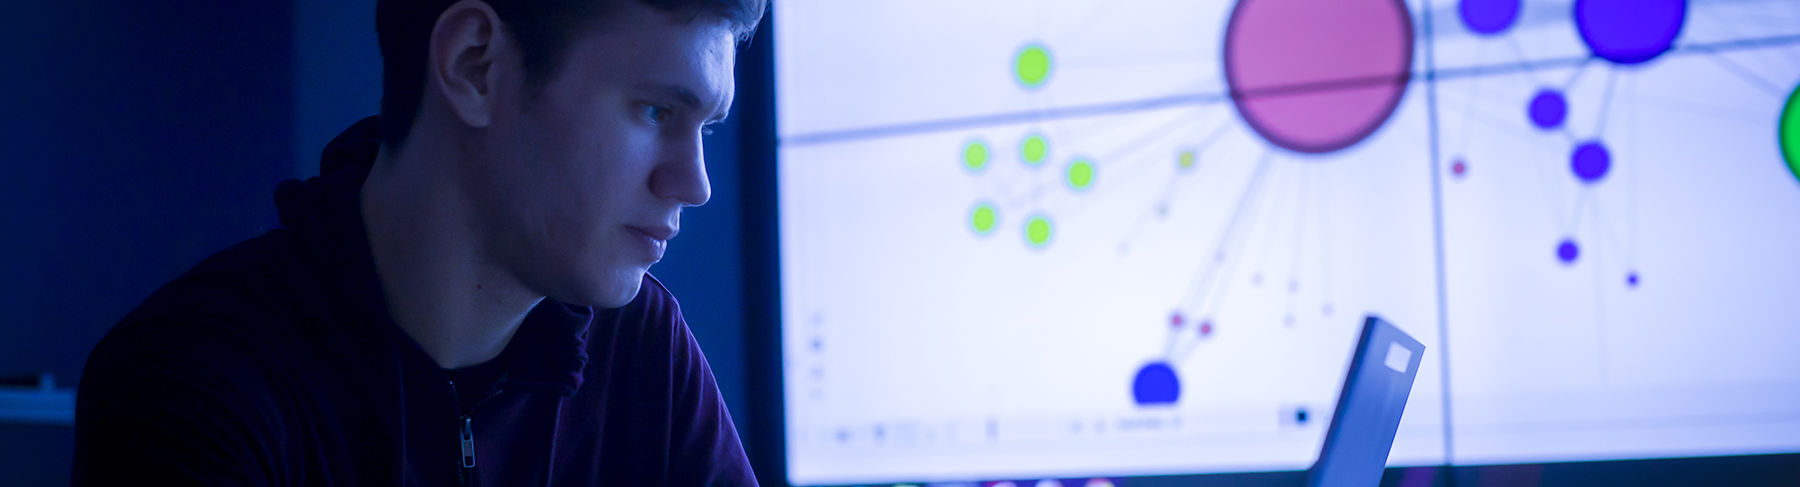 A student looks at his computer with digital data projected on a screen behind him.